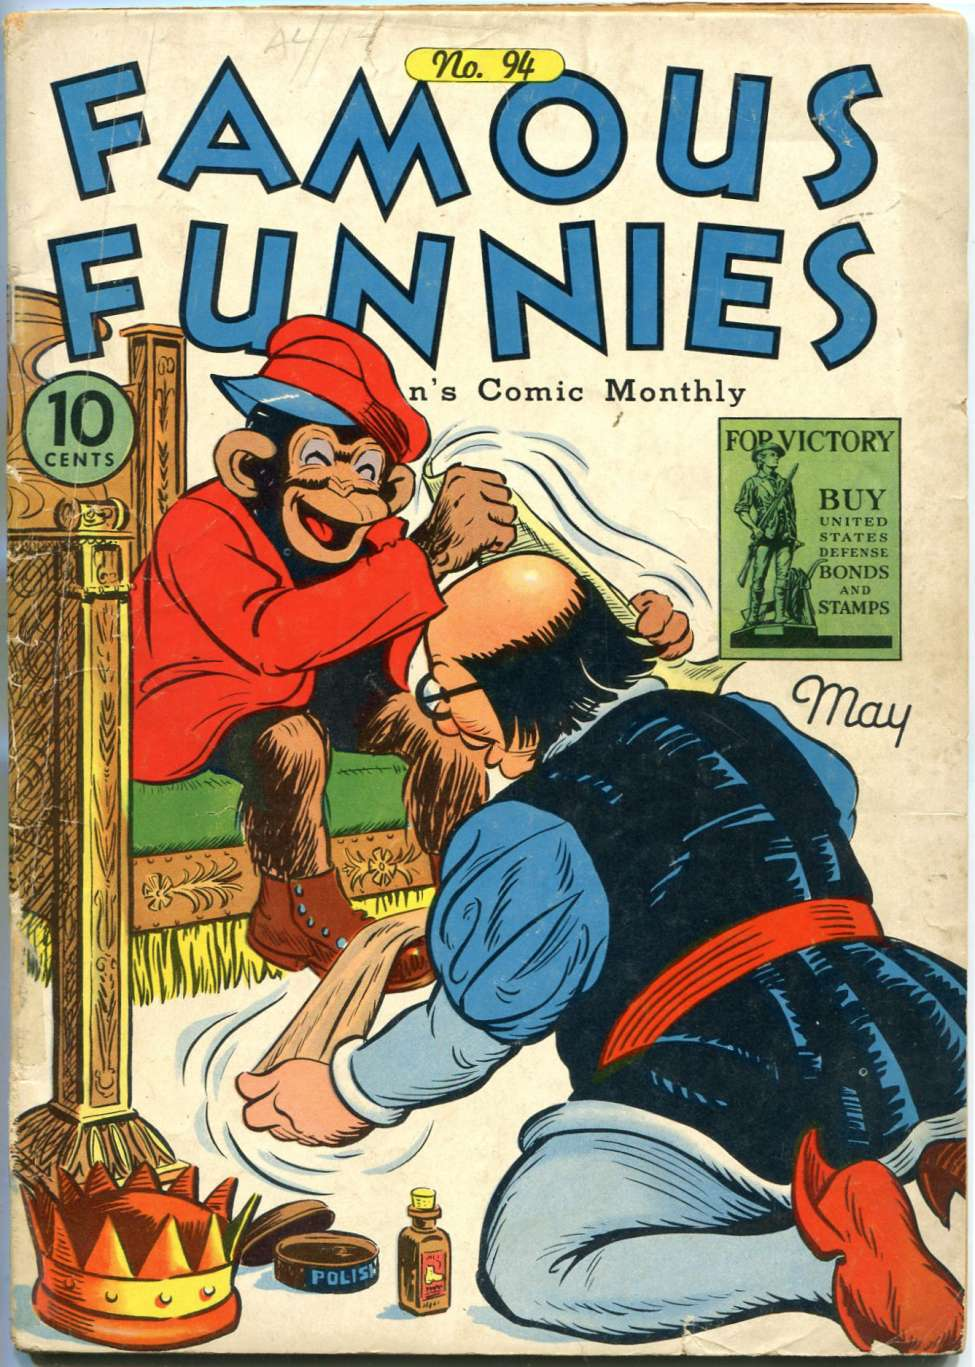 Comic Book Cover For Famous Funnies #94